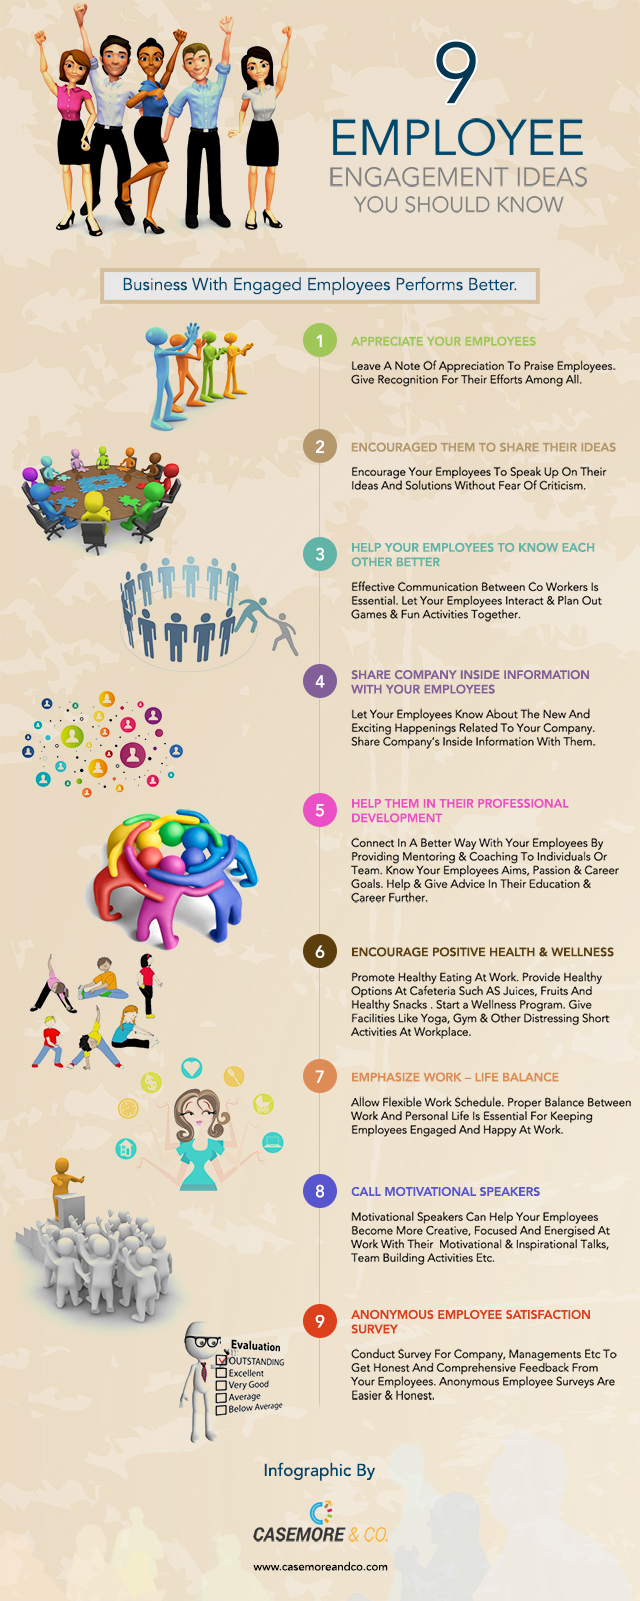 9 EMPLOYEE ENGAGEMENT IDEAS YOU SHOULD KNOW